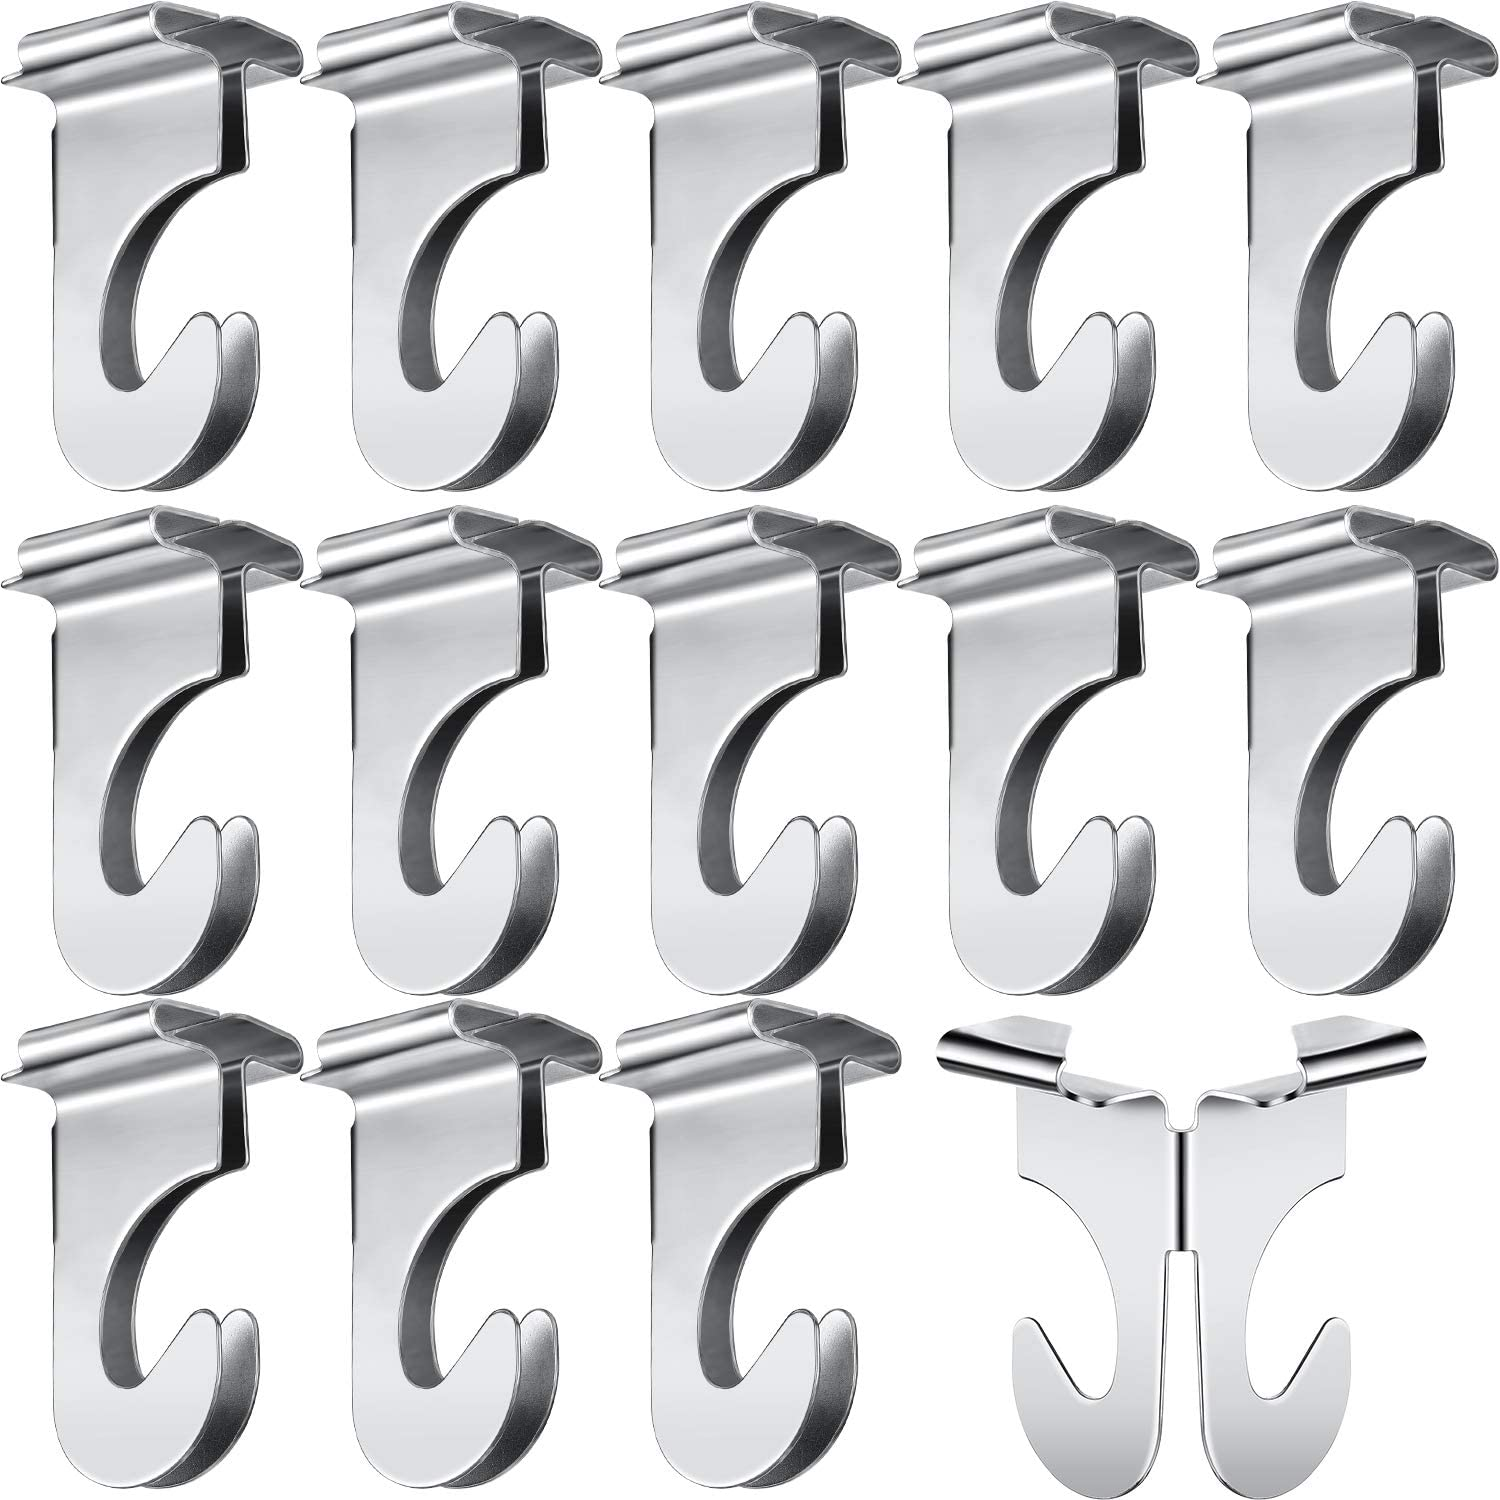 40 Pieces Metal Drop Ceiling Hooks Stainless Steel Drop Ceiling HooksT-Bar Track Clip Suspended Ceiling Hooks for Hanging Plants Office Signs Decorations